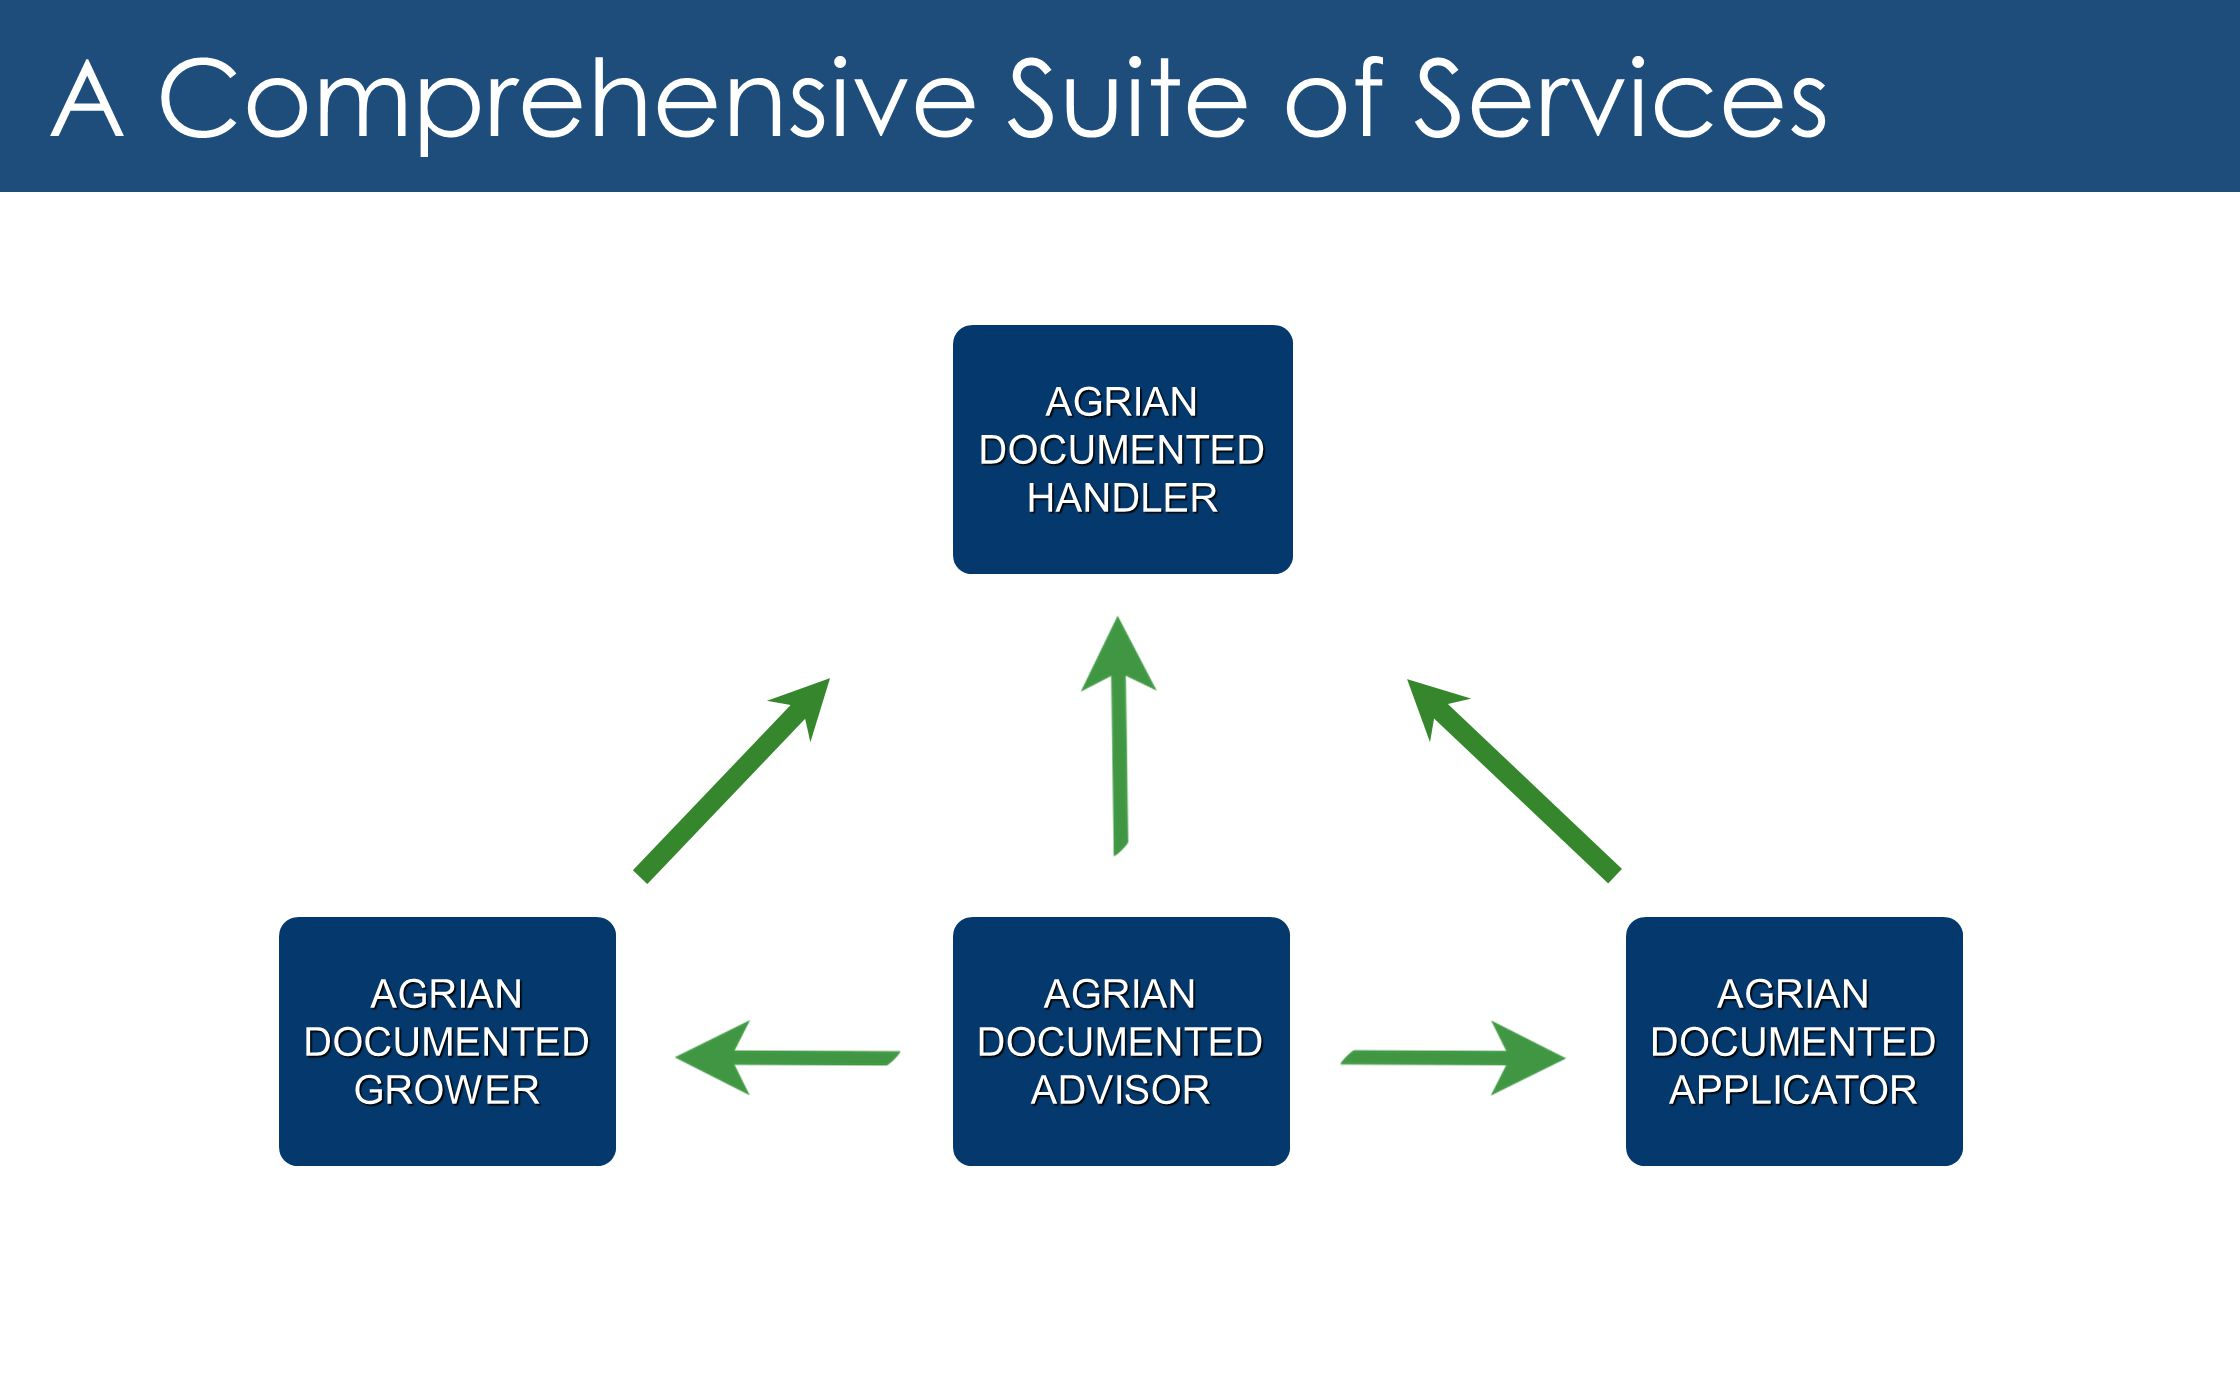 A Comprehensive Suite of Services